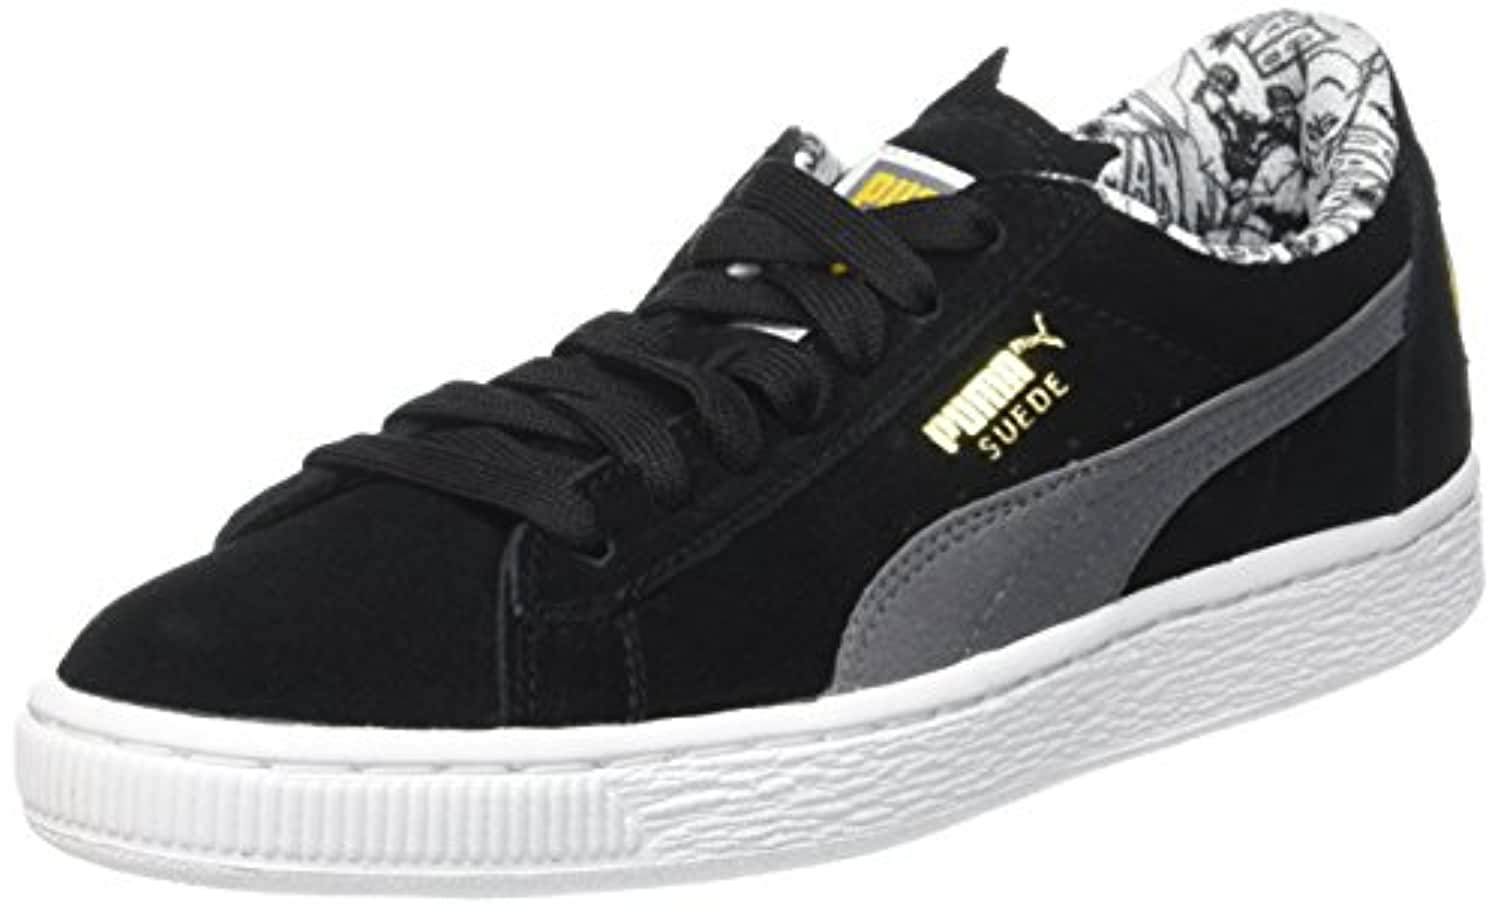 Puma Unisex Kids' Suede Batman Jr Low-Top Trainers, Black (Black/Grey 01), 3 UK 35 1/2 EU